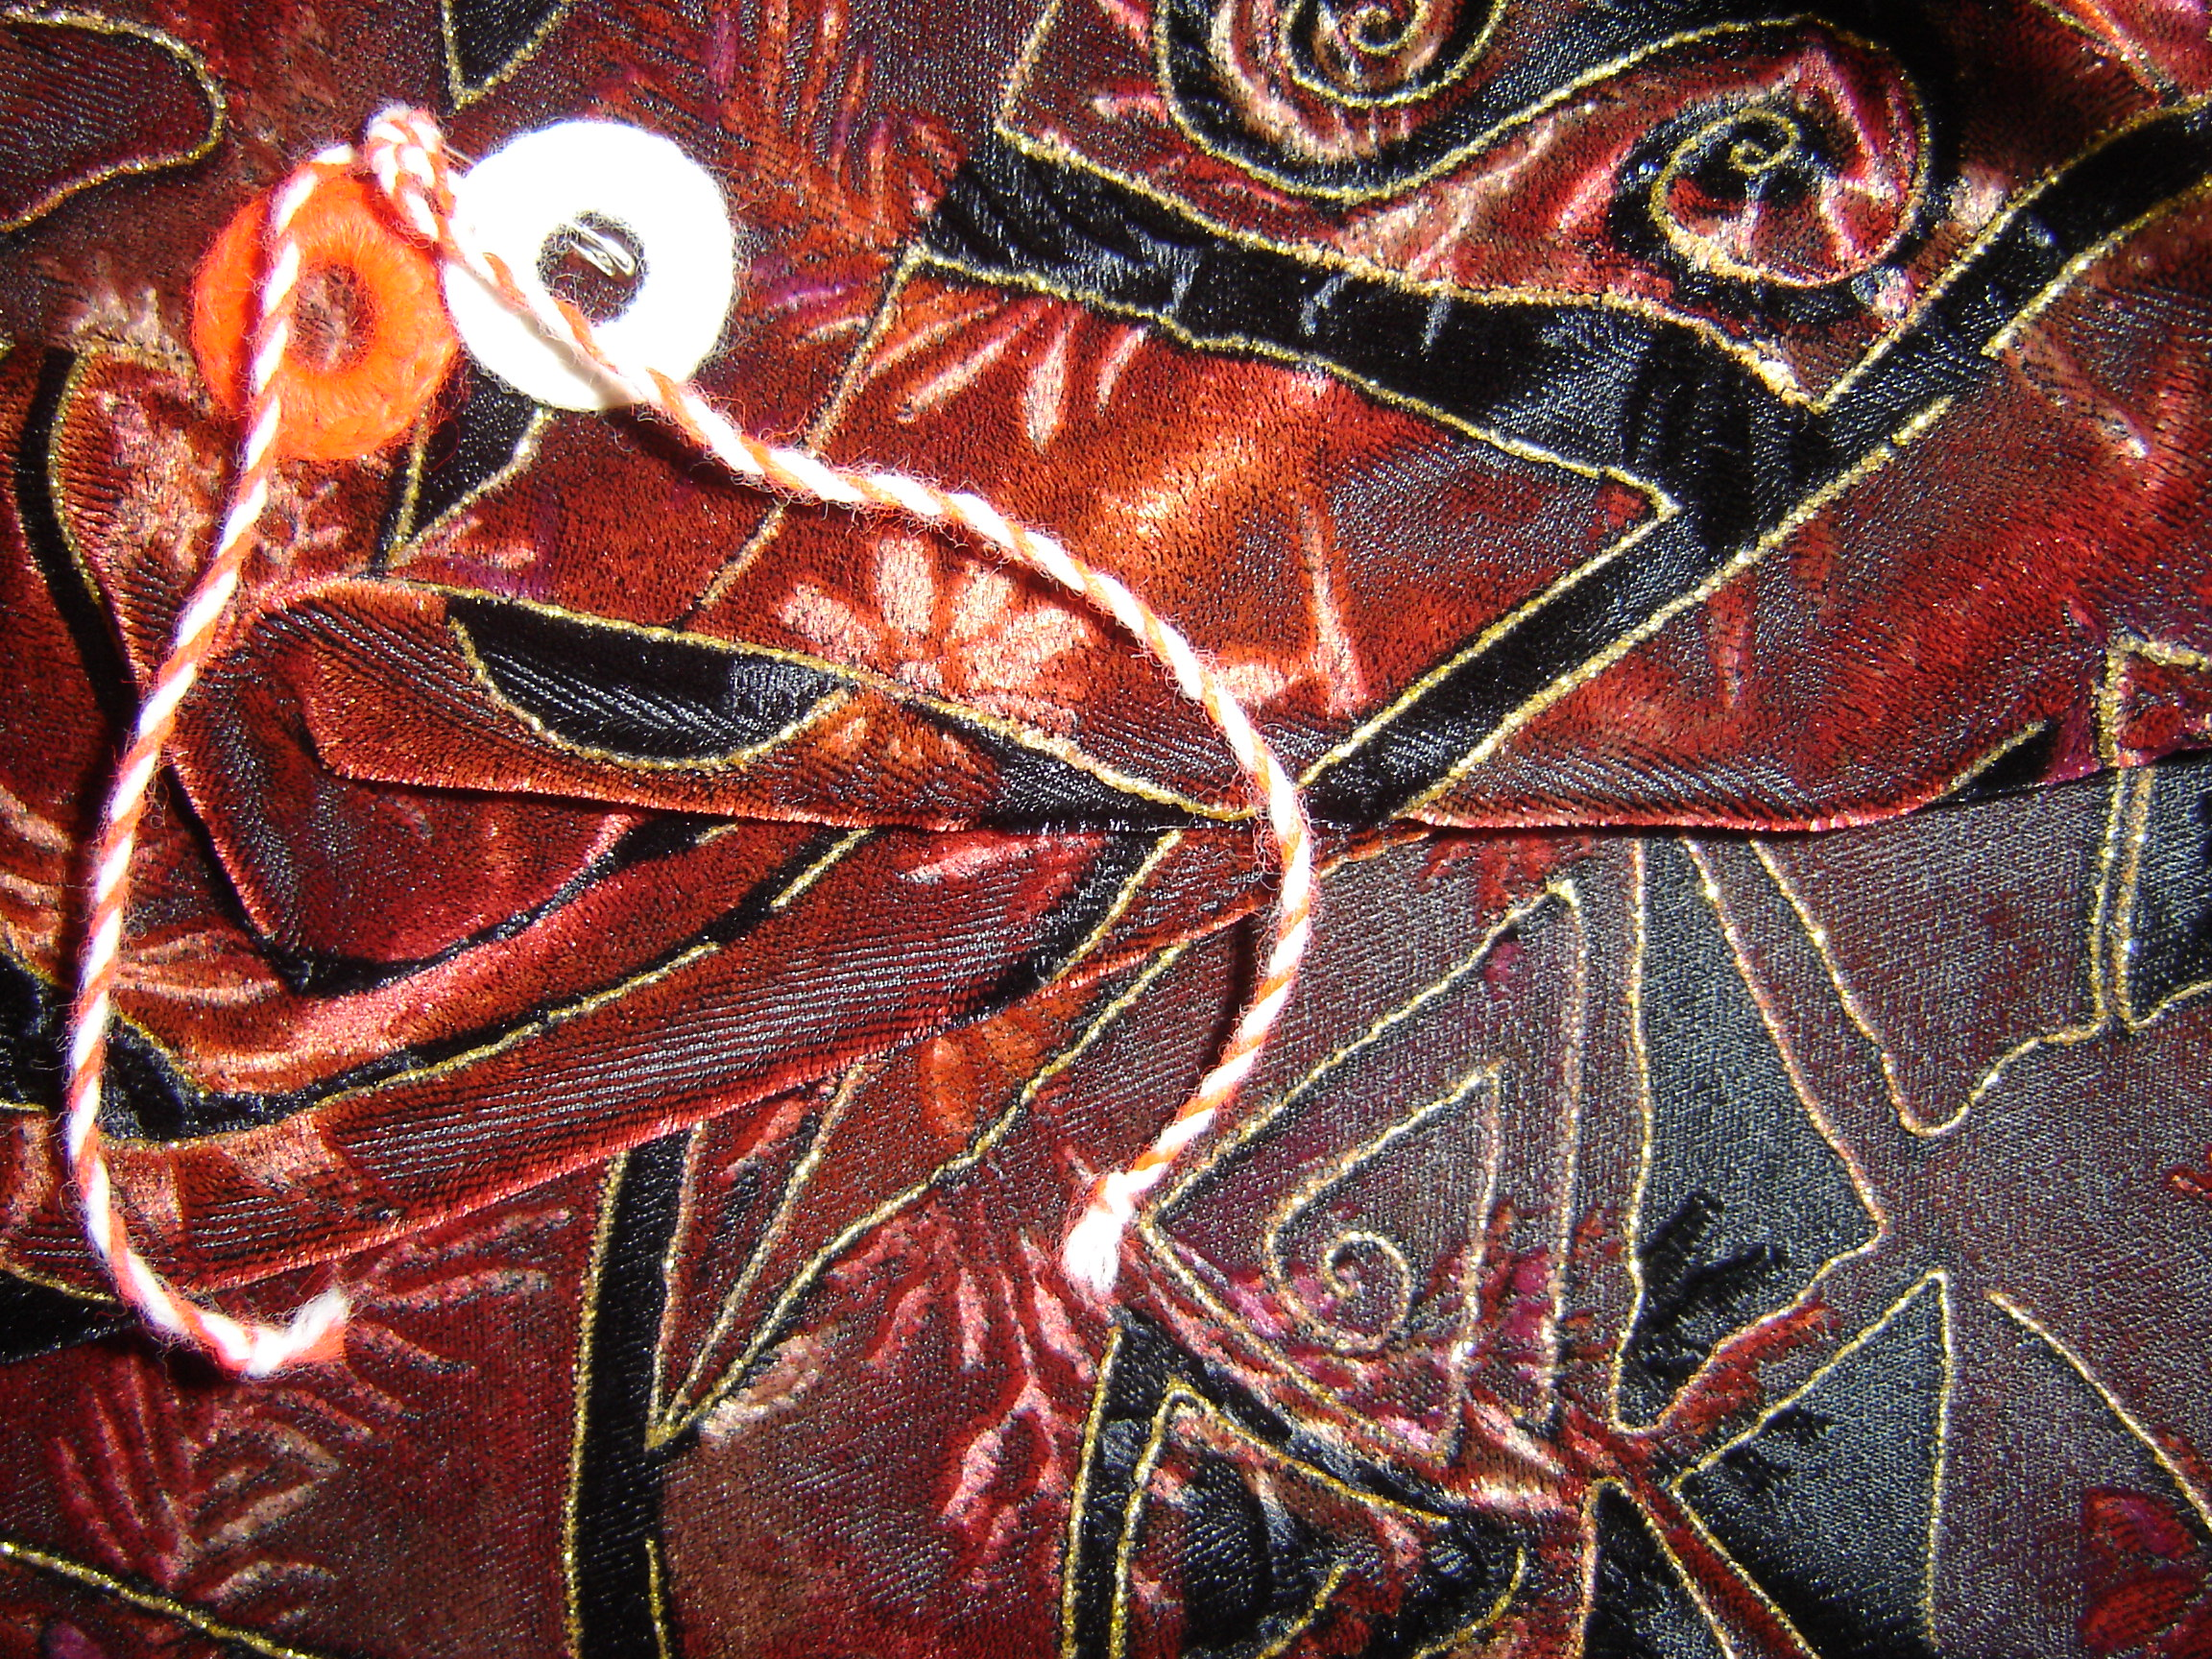 Martenitsa, pinned to a cropped velvet jacket